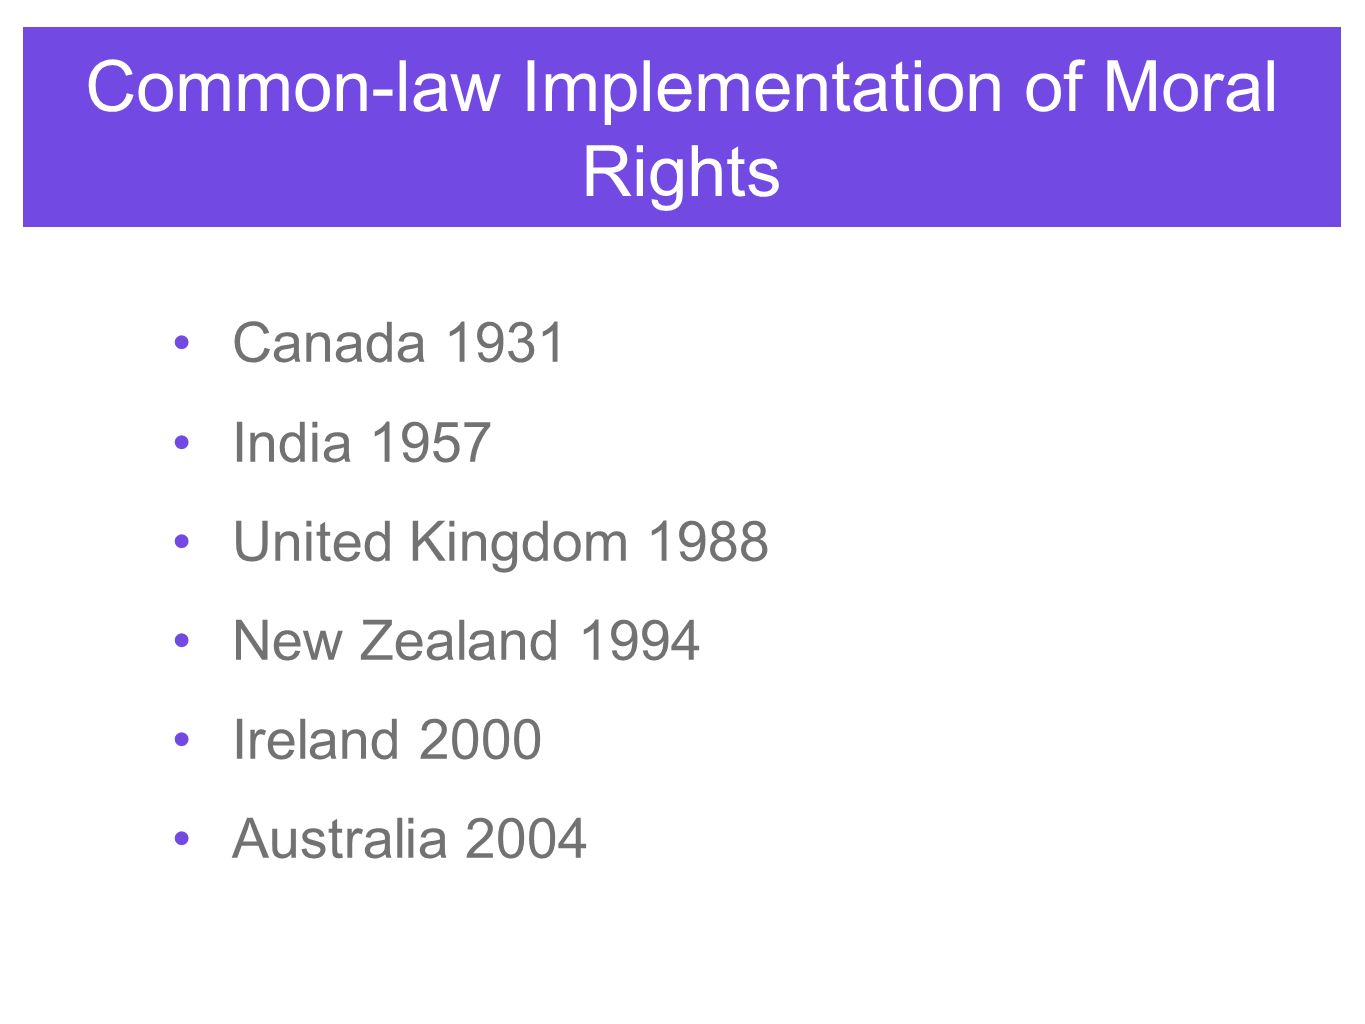 Common-law Implementation of Moral Rights